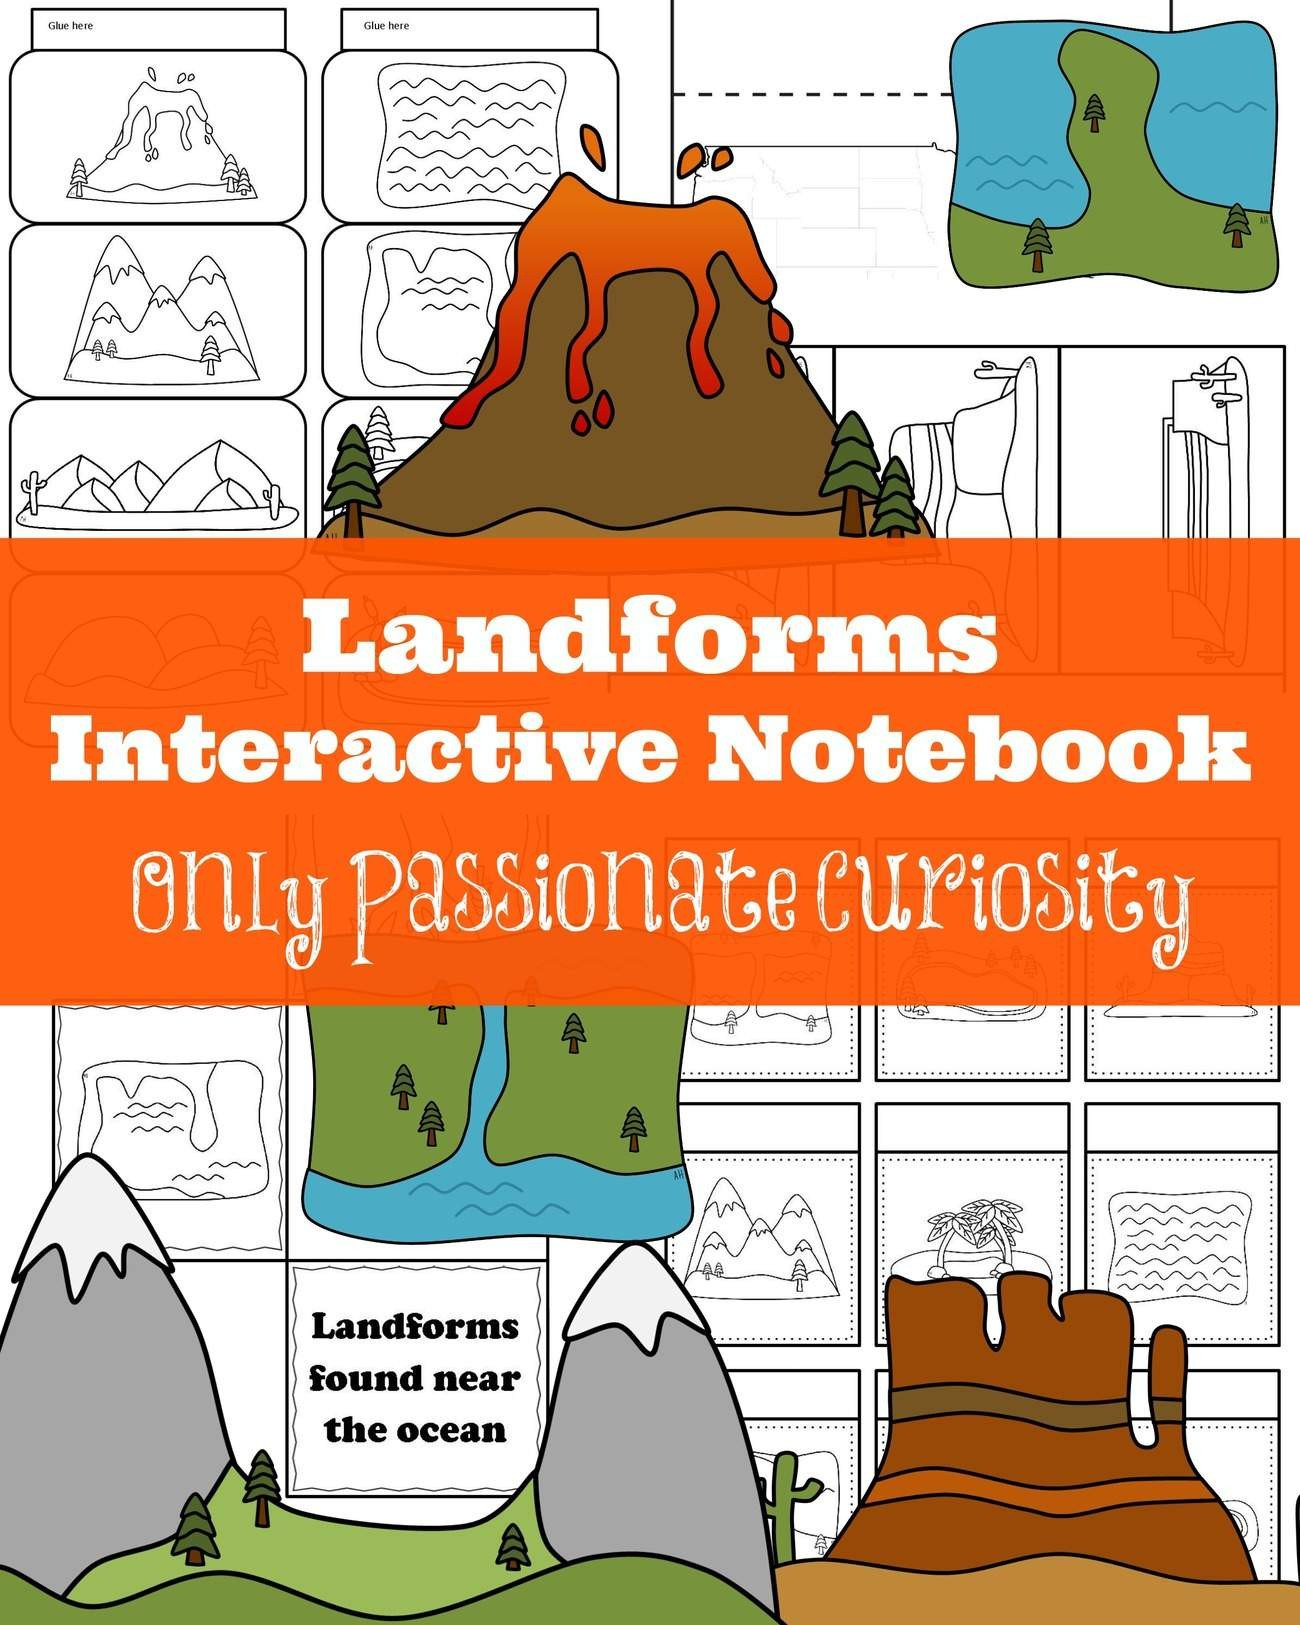 Landforms Worksheet for Kindergarten Landforms Interactive Notebook Pack Ly Passionate Curiosity